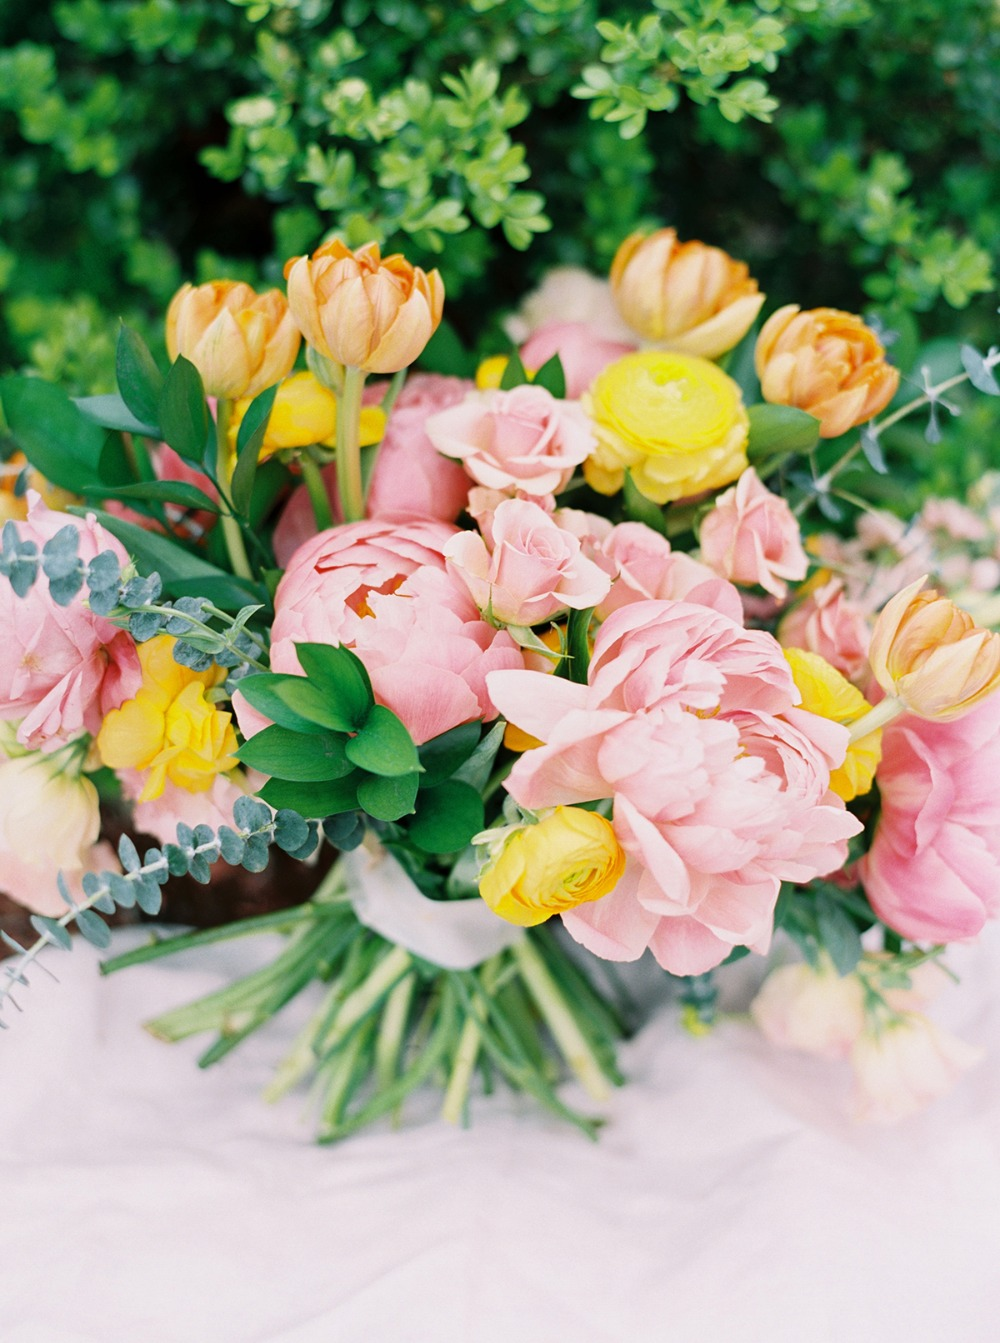 springtime wedding bouquet idea